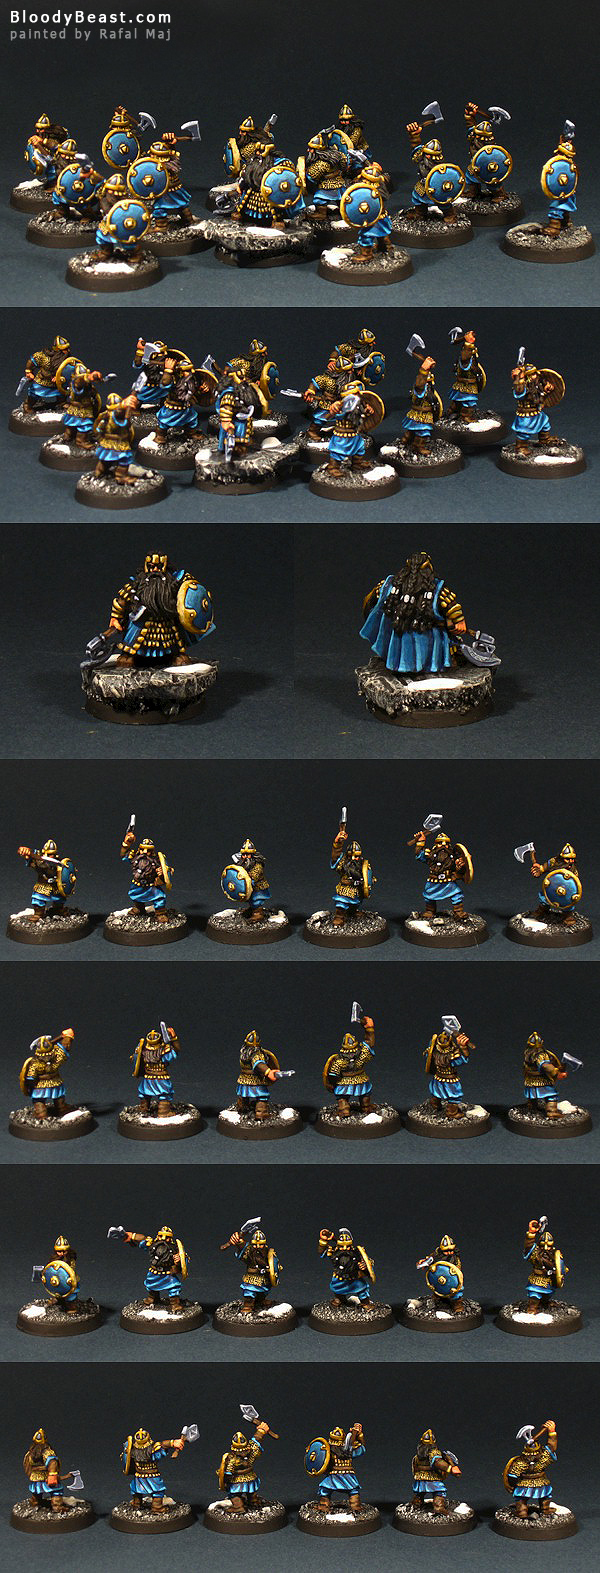 Dwarf Warriors with Balin painted by Rafal Maj (BloodyBeast.com)